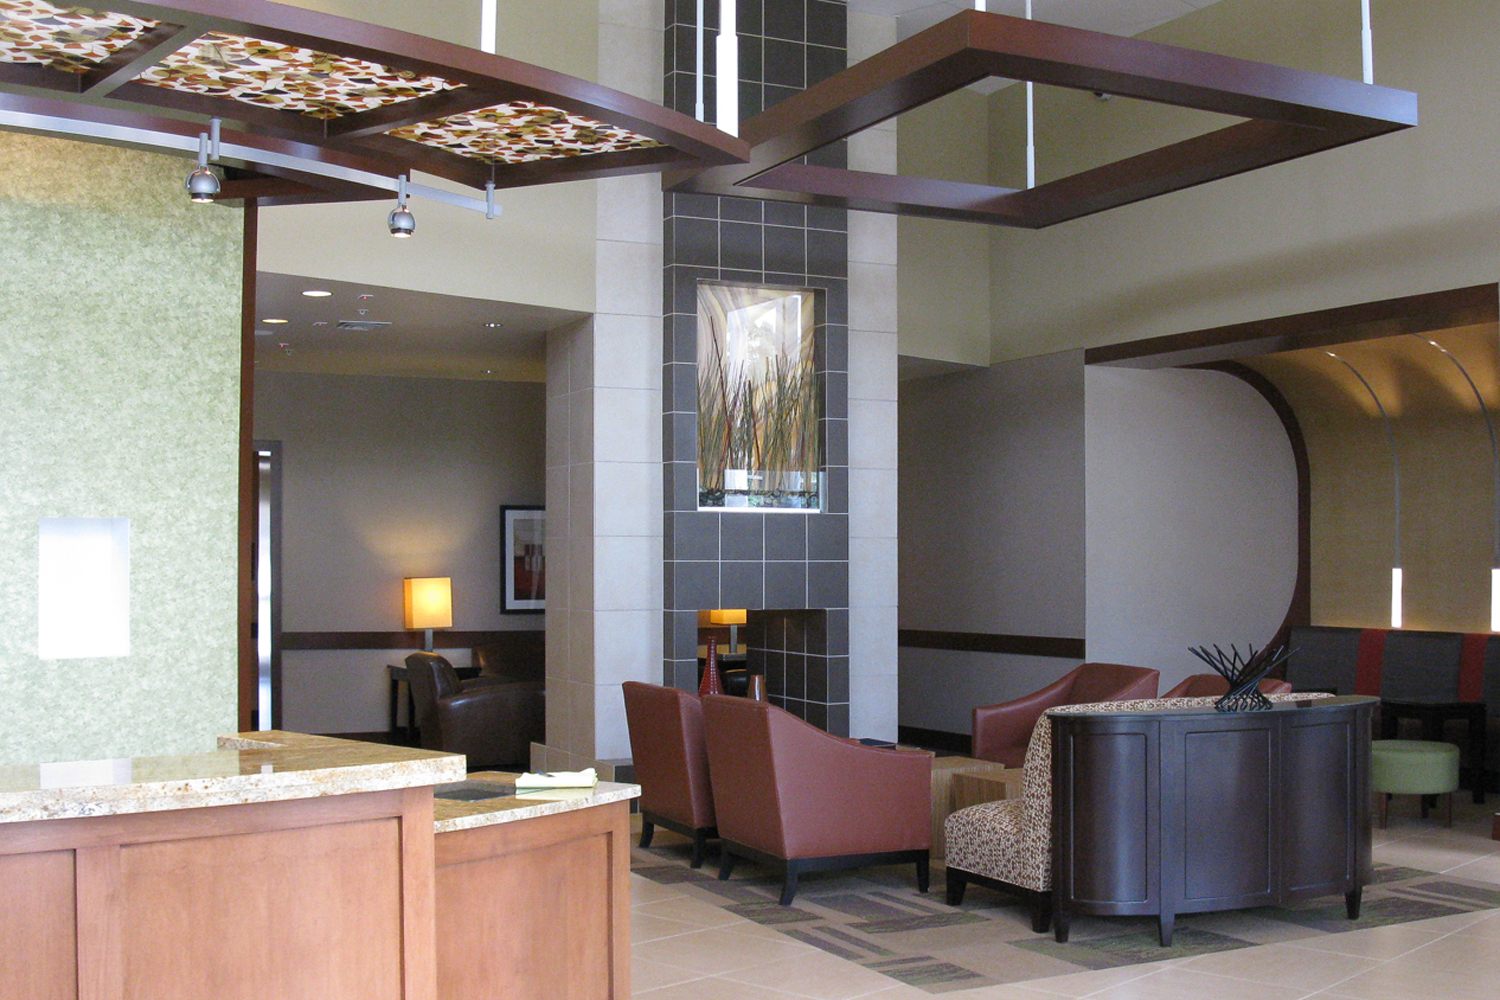 Hyatt-Place-in-Memphis,-Tn---Hospitality-Hotel-Design-Construction-5.jpg